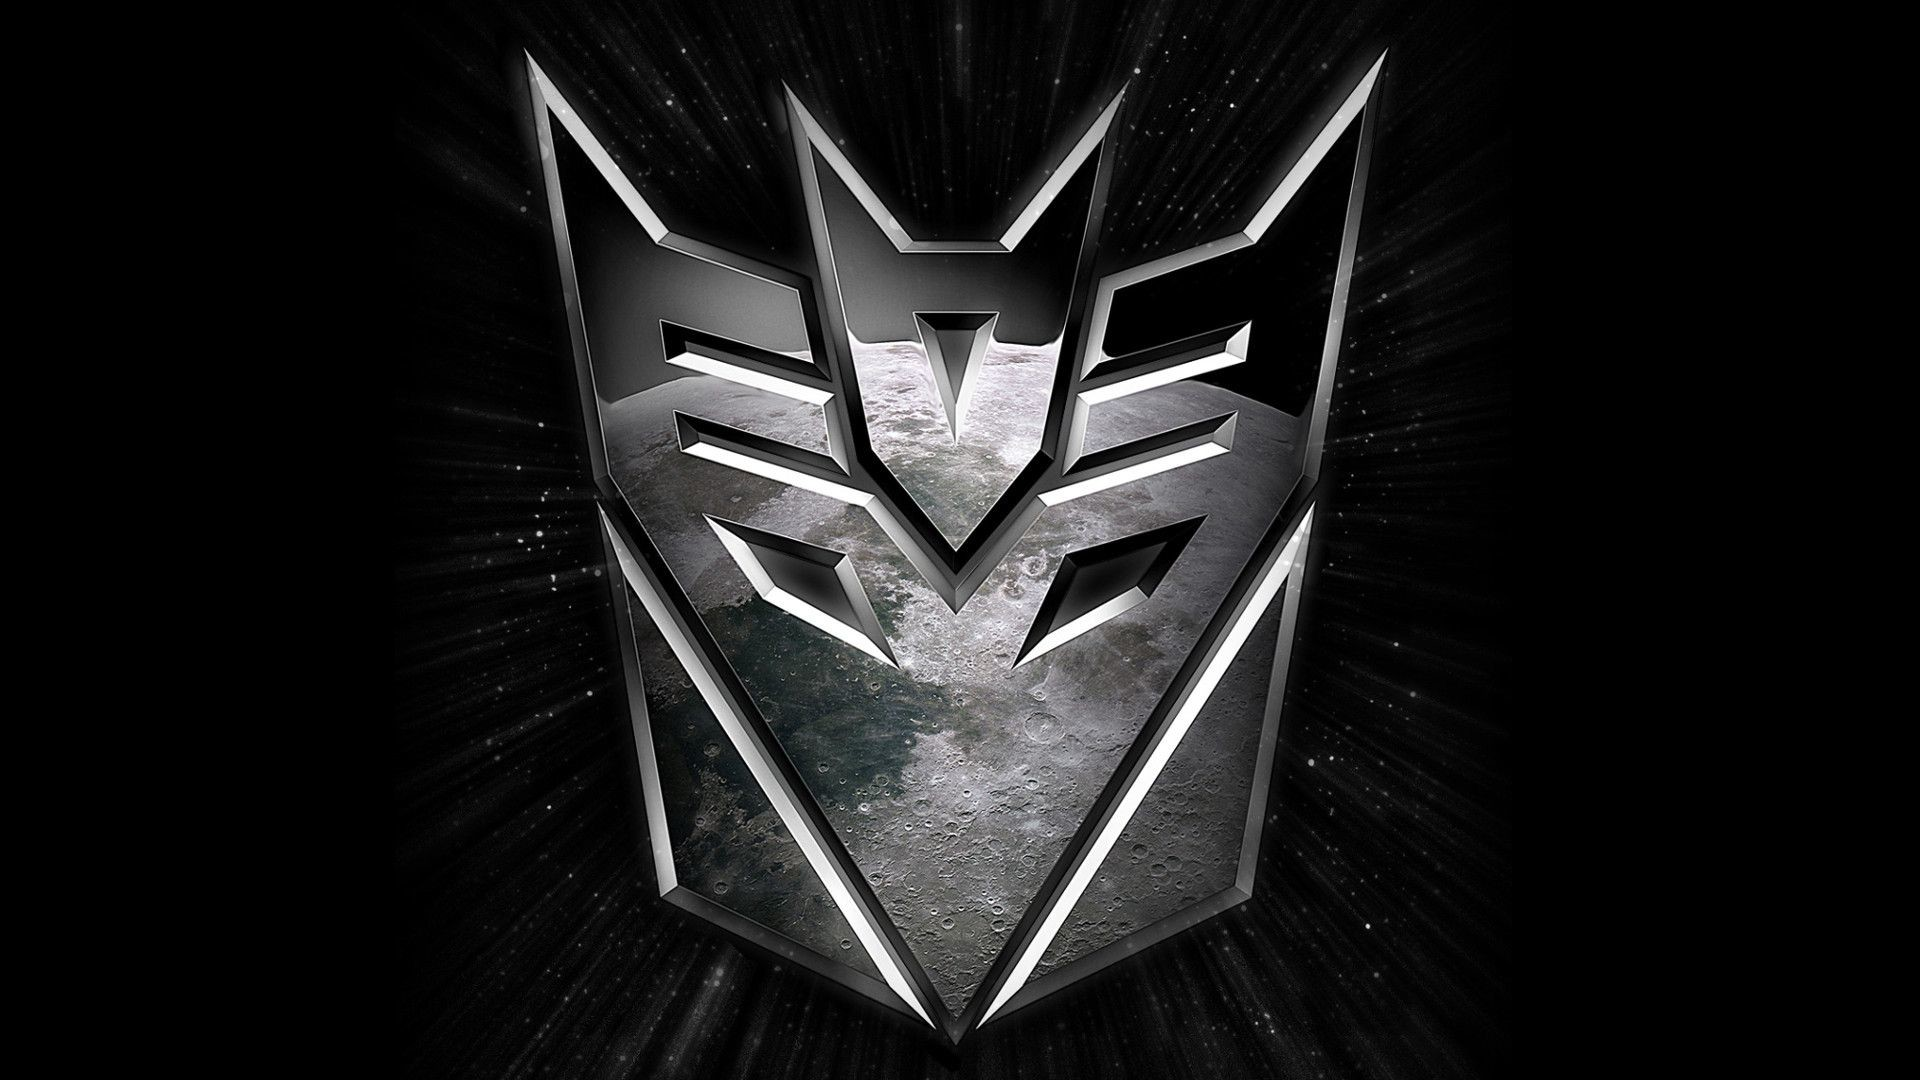 1920x1080 ... wallpaper Transformers Decepticons Aluminum Large Emblem in Black | My  Wish .